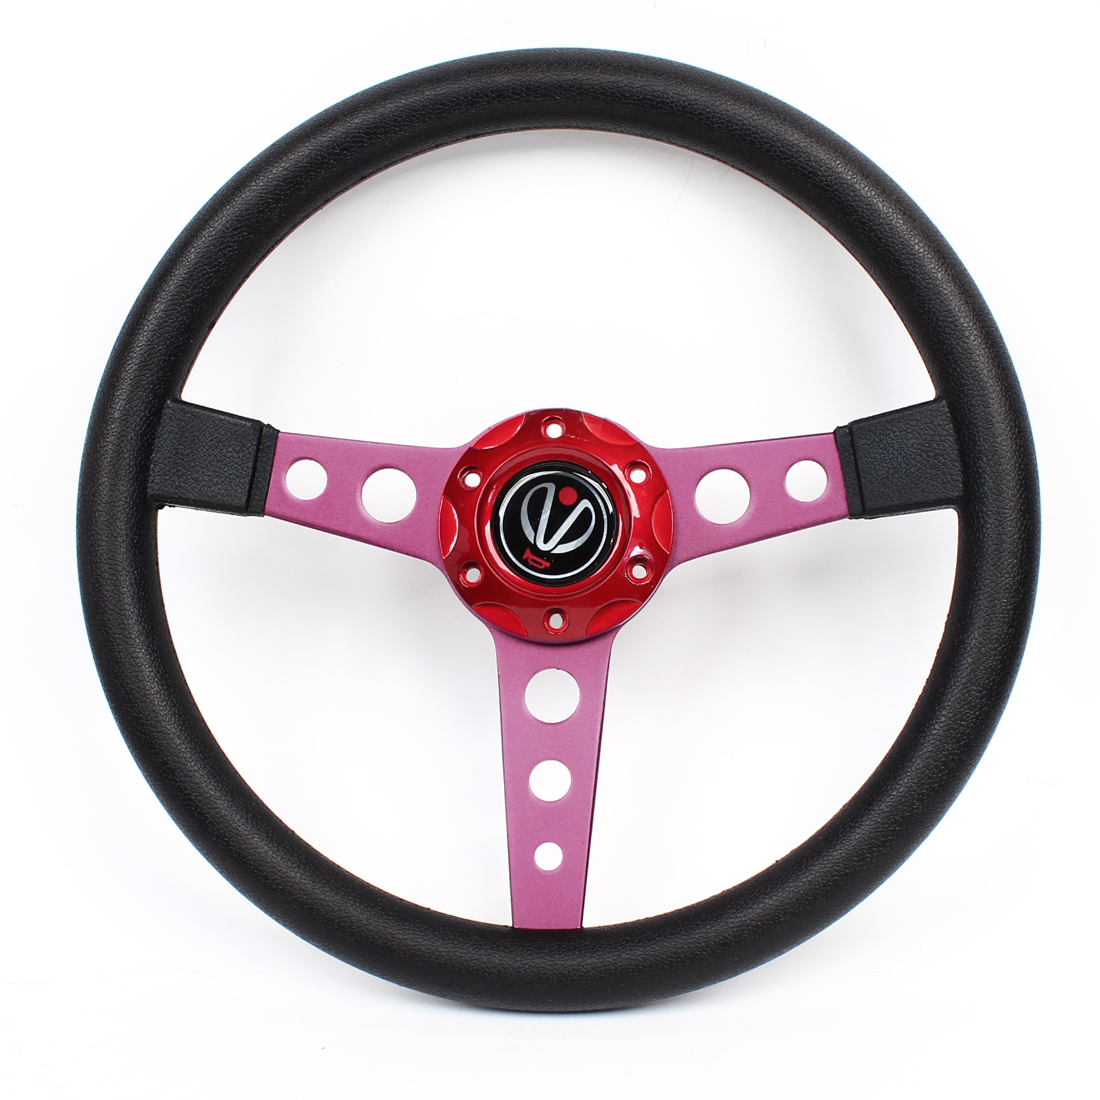 34.5cm Dia Faux Leather Coated Nonslip Racing Steering Wheel Red for Car Truck